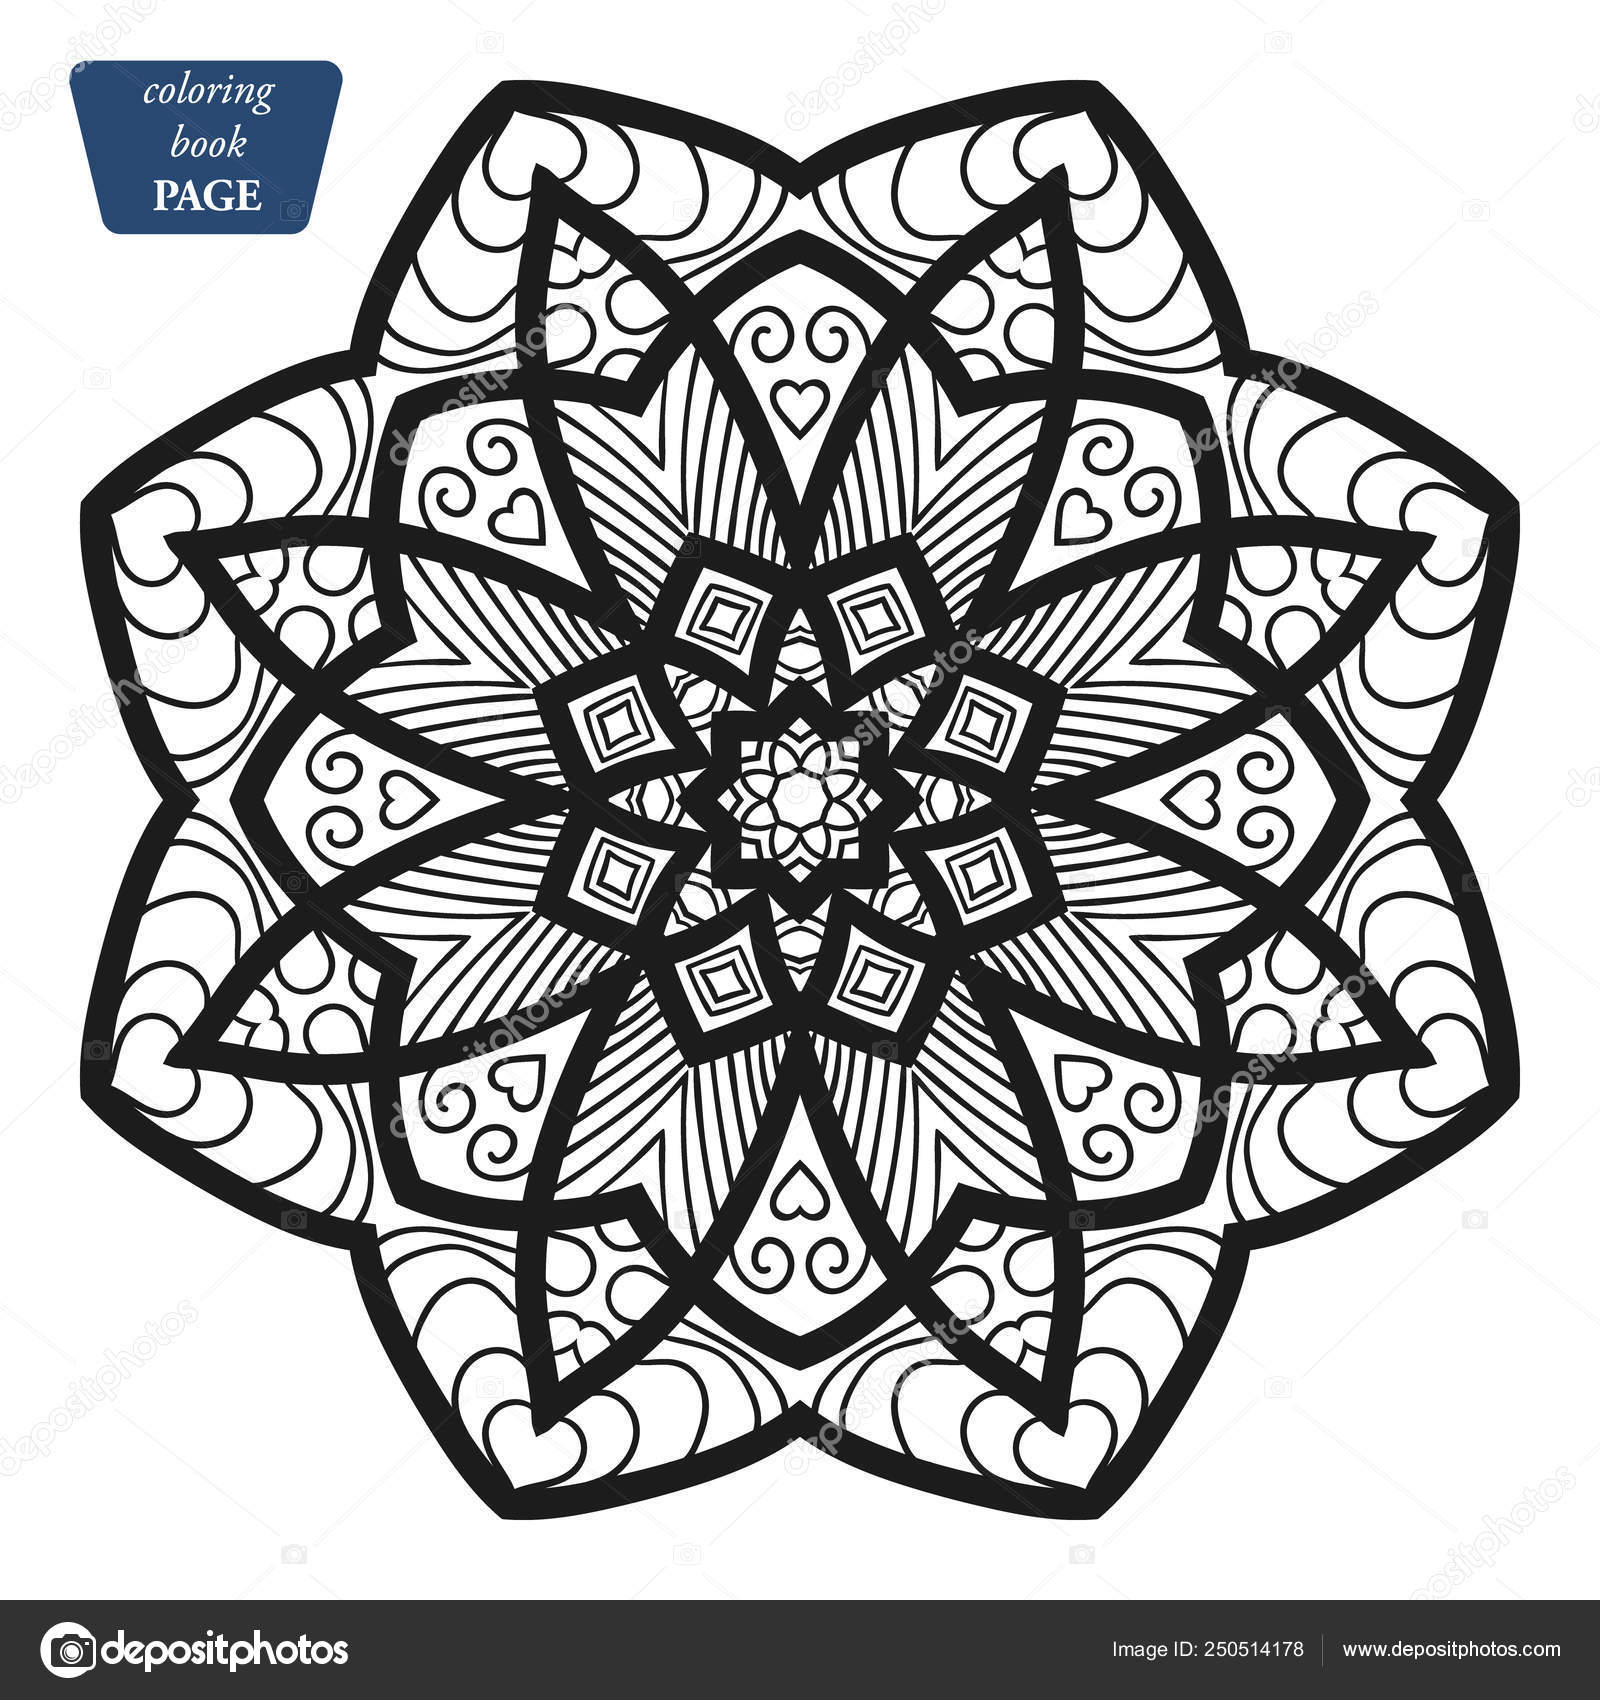 53 Top Yoga Coloring Book Pages Download Free Images